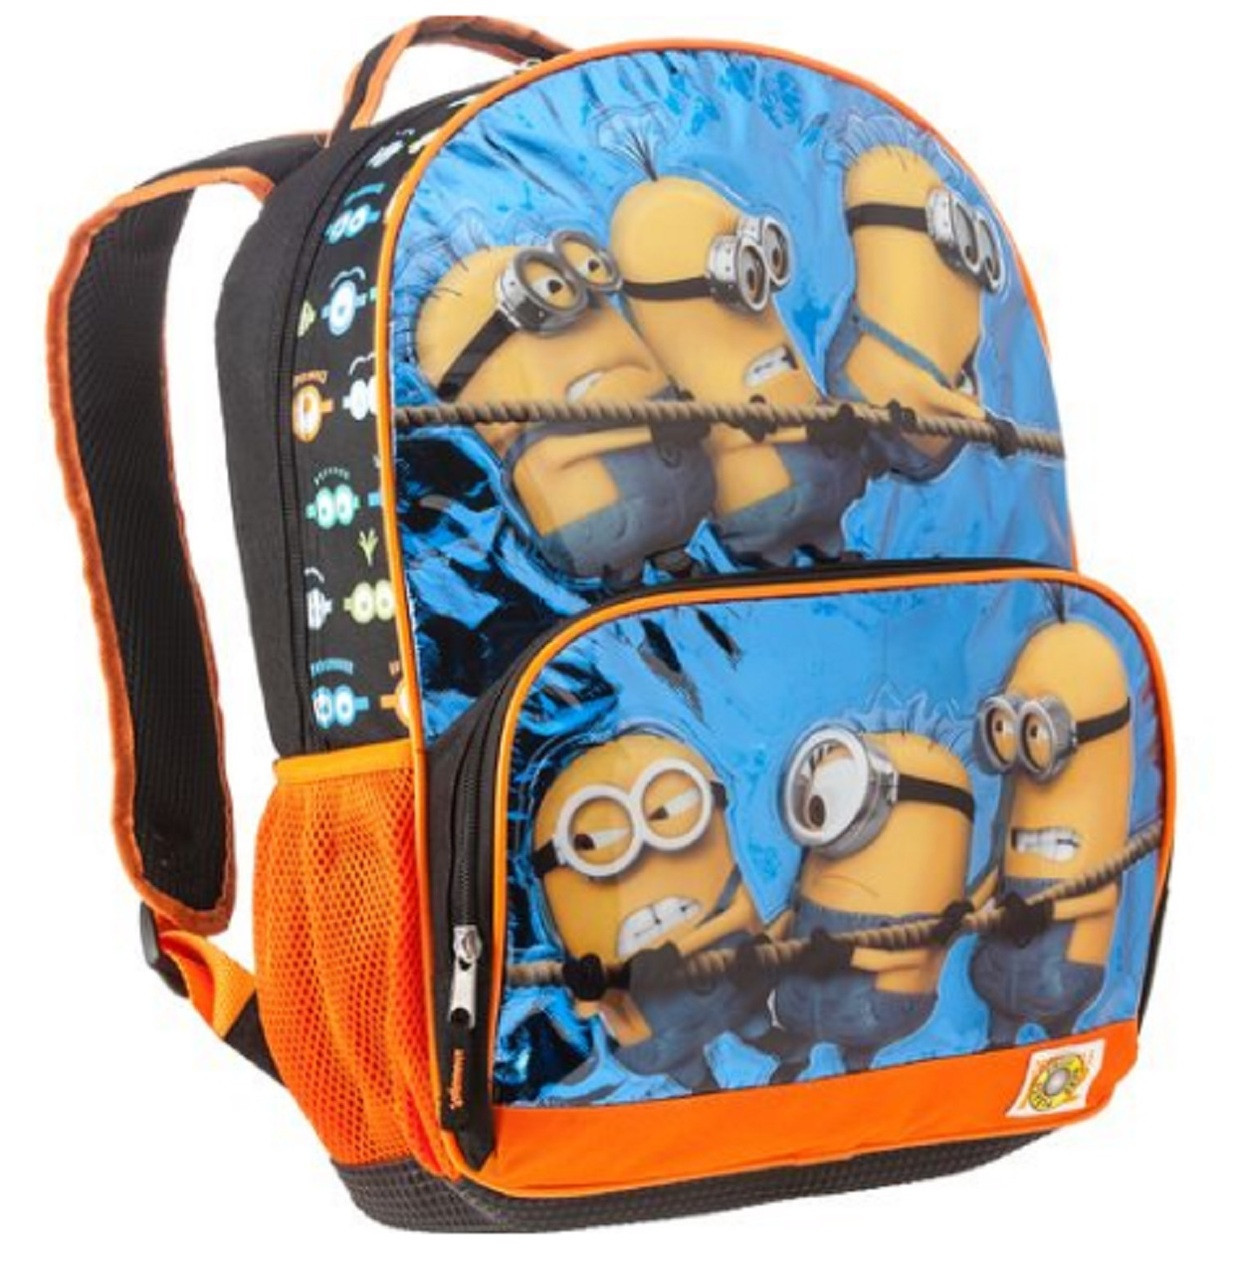 Despicable Me 16 Inch Large Backpack Orange - Who Wins?